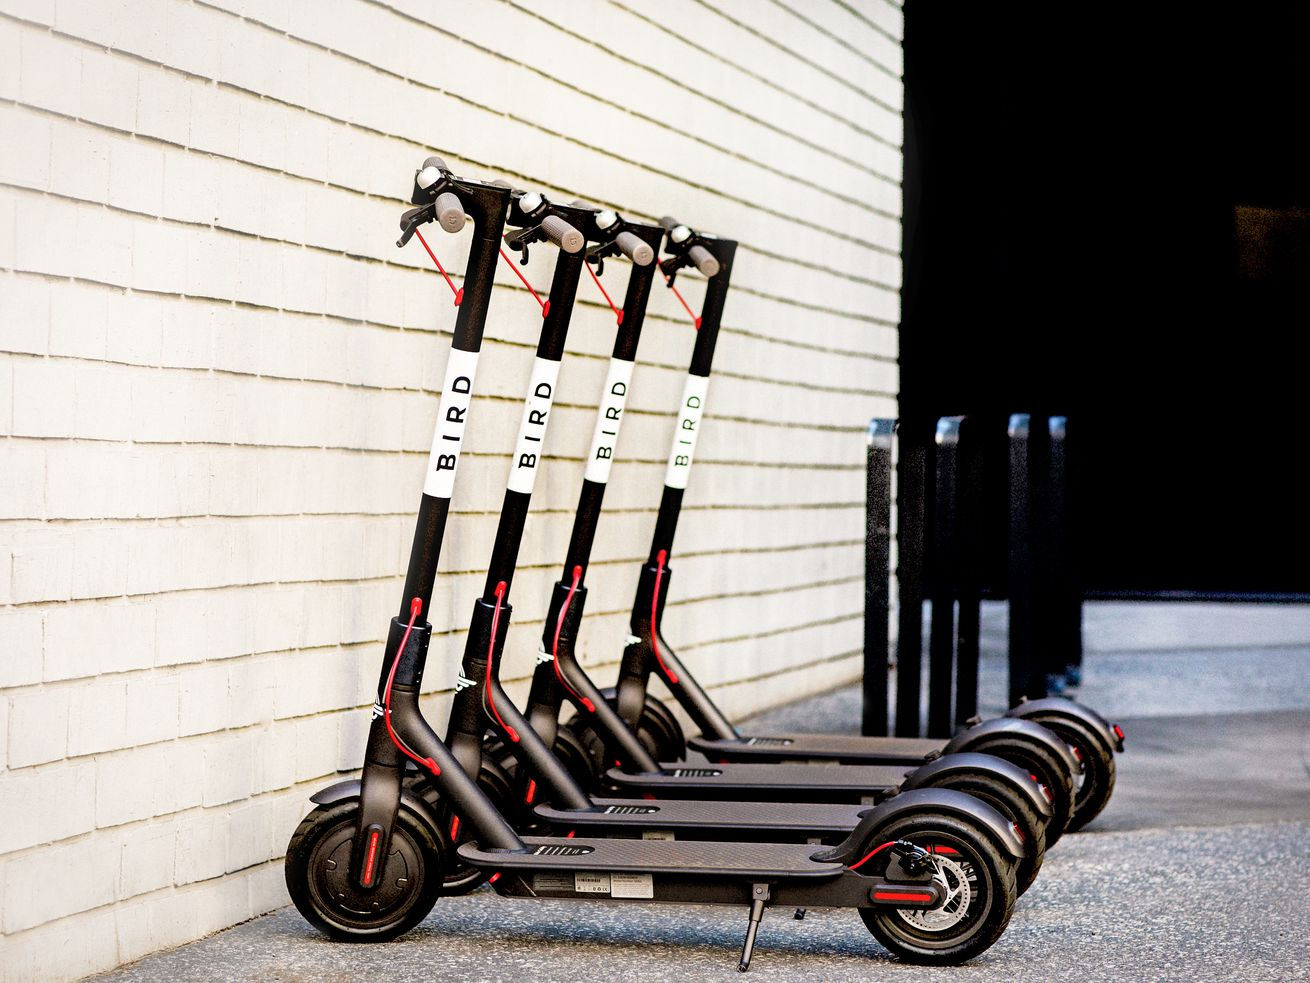 A proposed pilot program in Santa Monica would regulate the spread of dockless electric scooters.